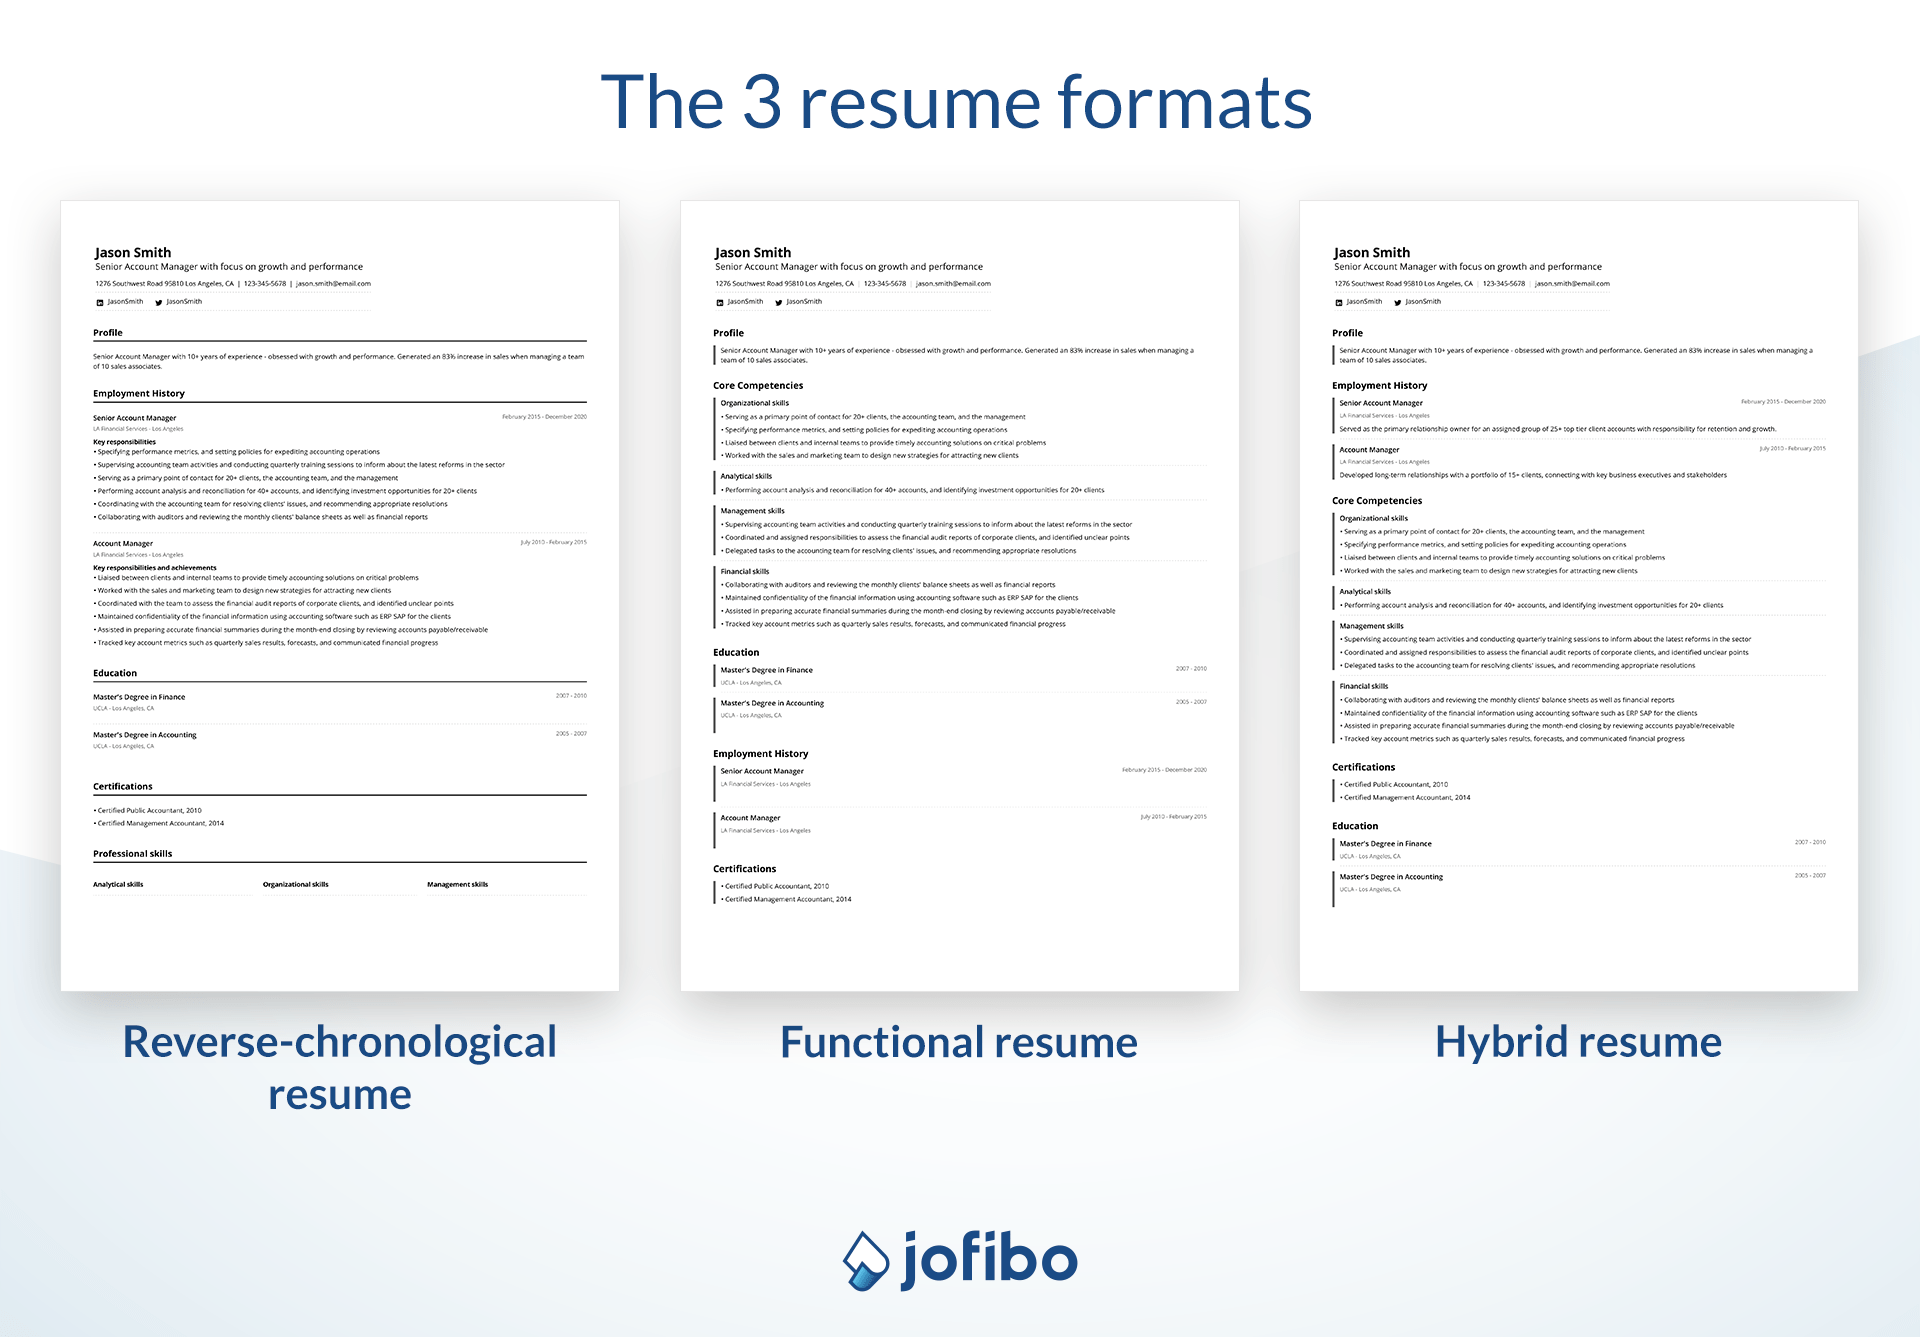 Illustration of three resume formats, reverse-chronological, functional resume and hybrid resume